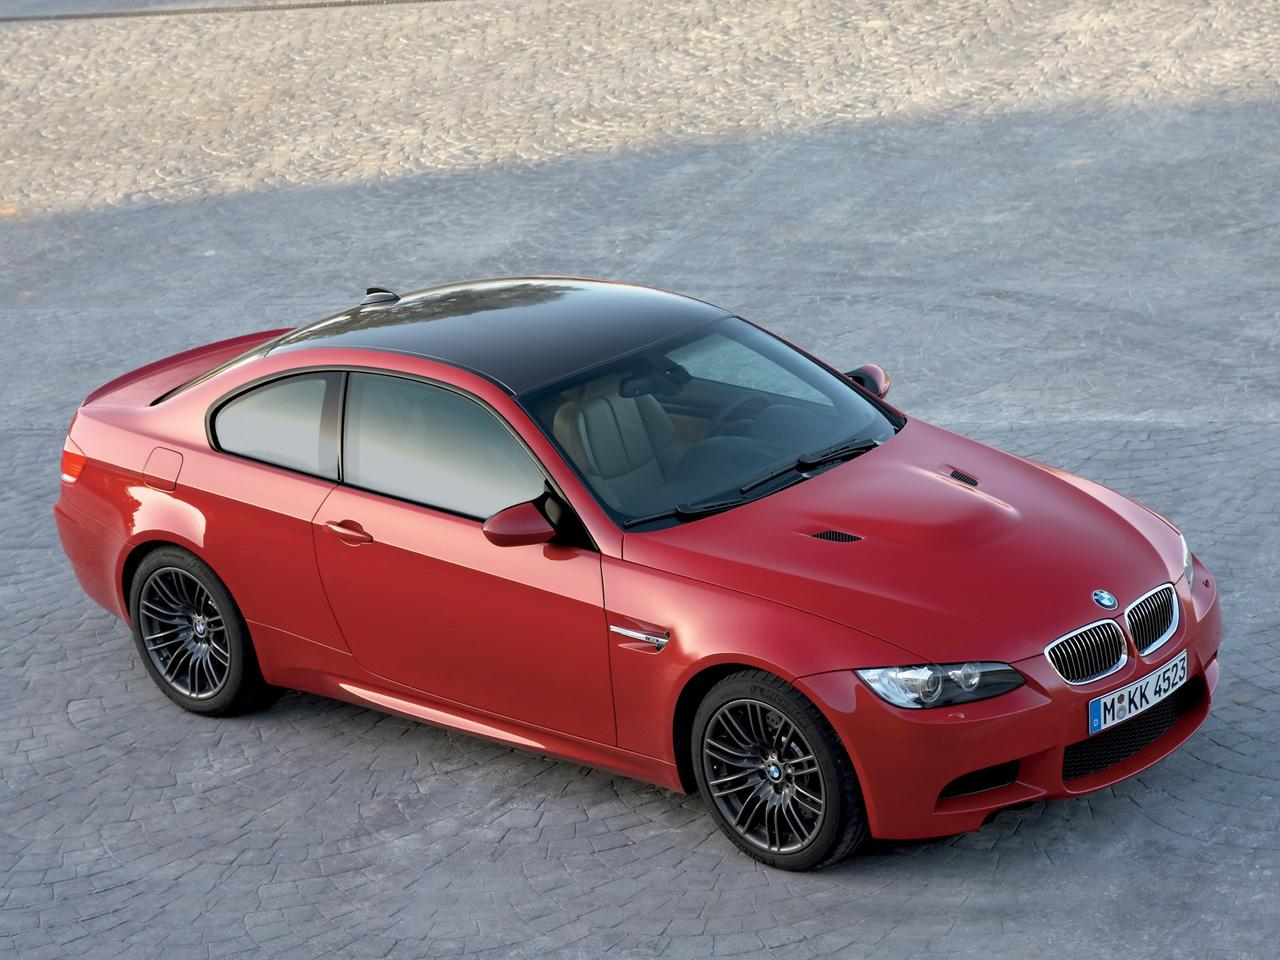 bmw m3 pictures all about the new bmw m3. Black Bedroom Furniture Sets. Home Design Ideas